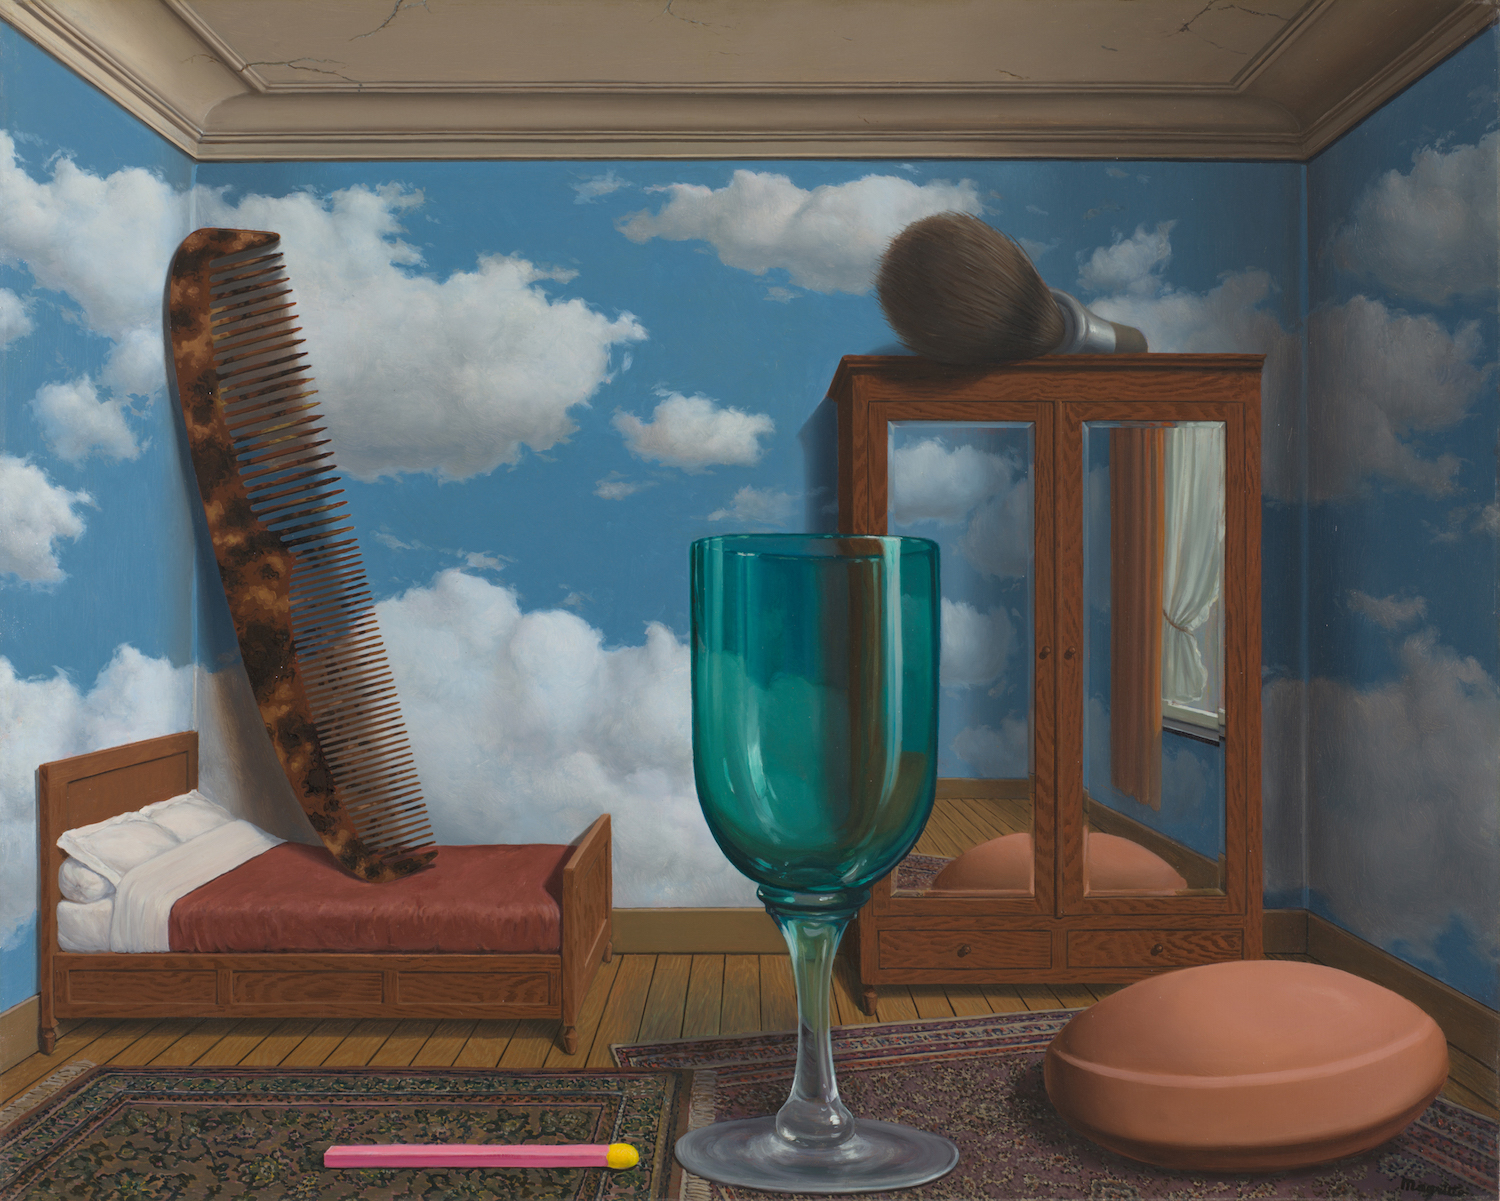 Personal Values, 1952, by René Magritte